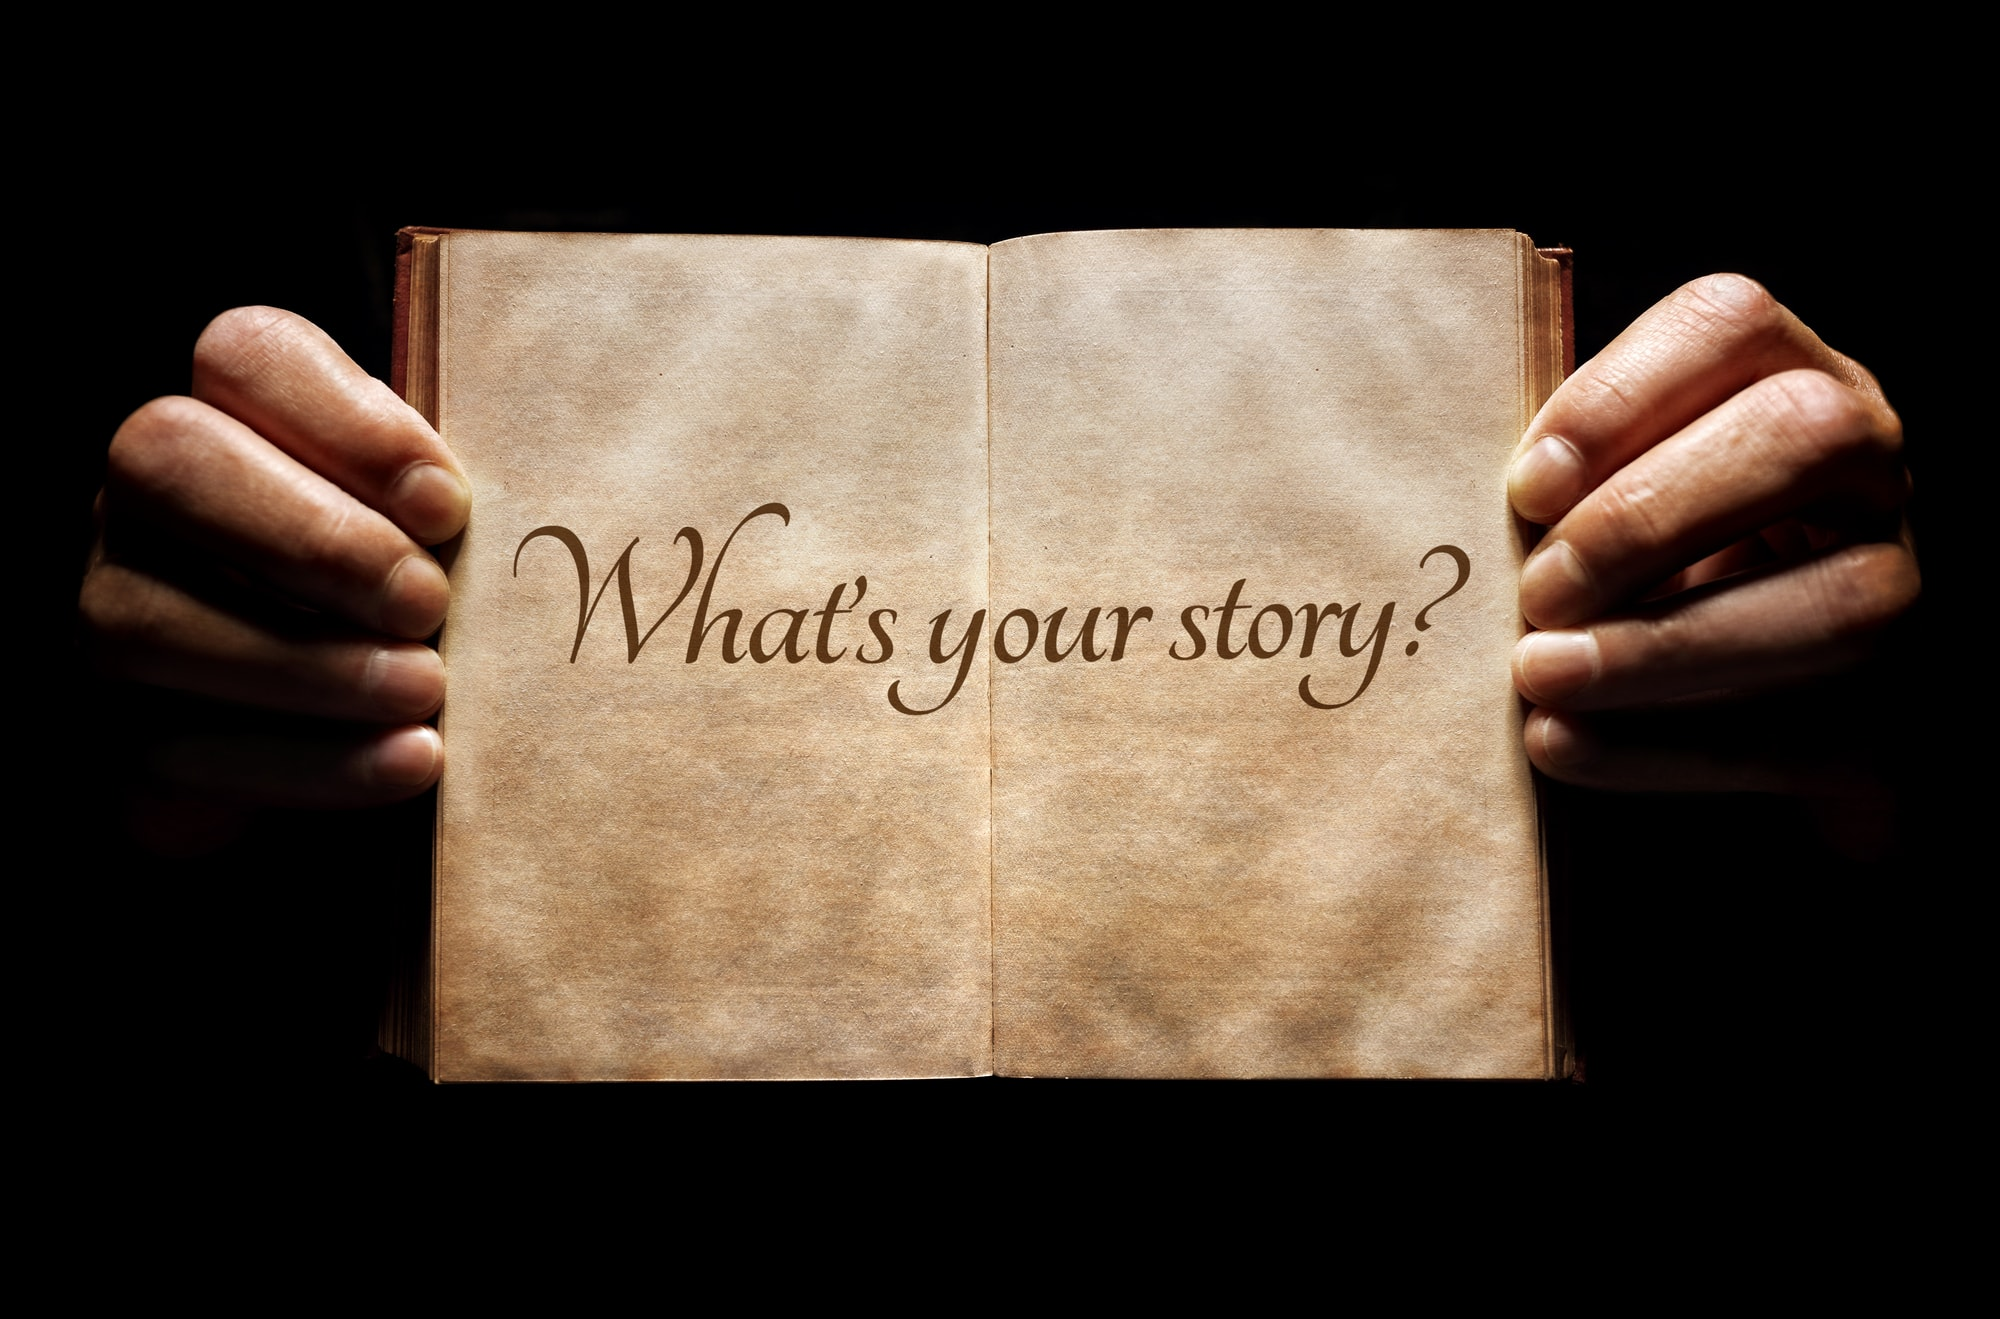 What's your story? hands holding an open book background message